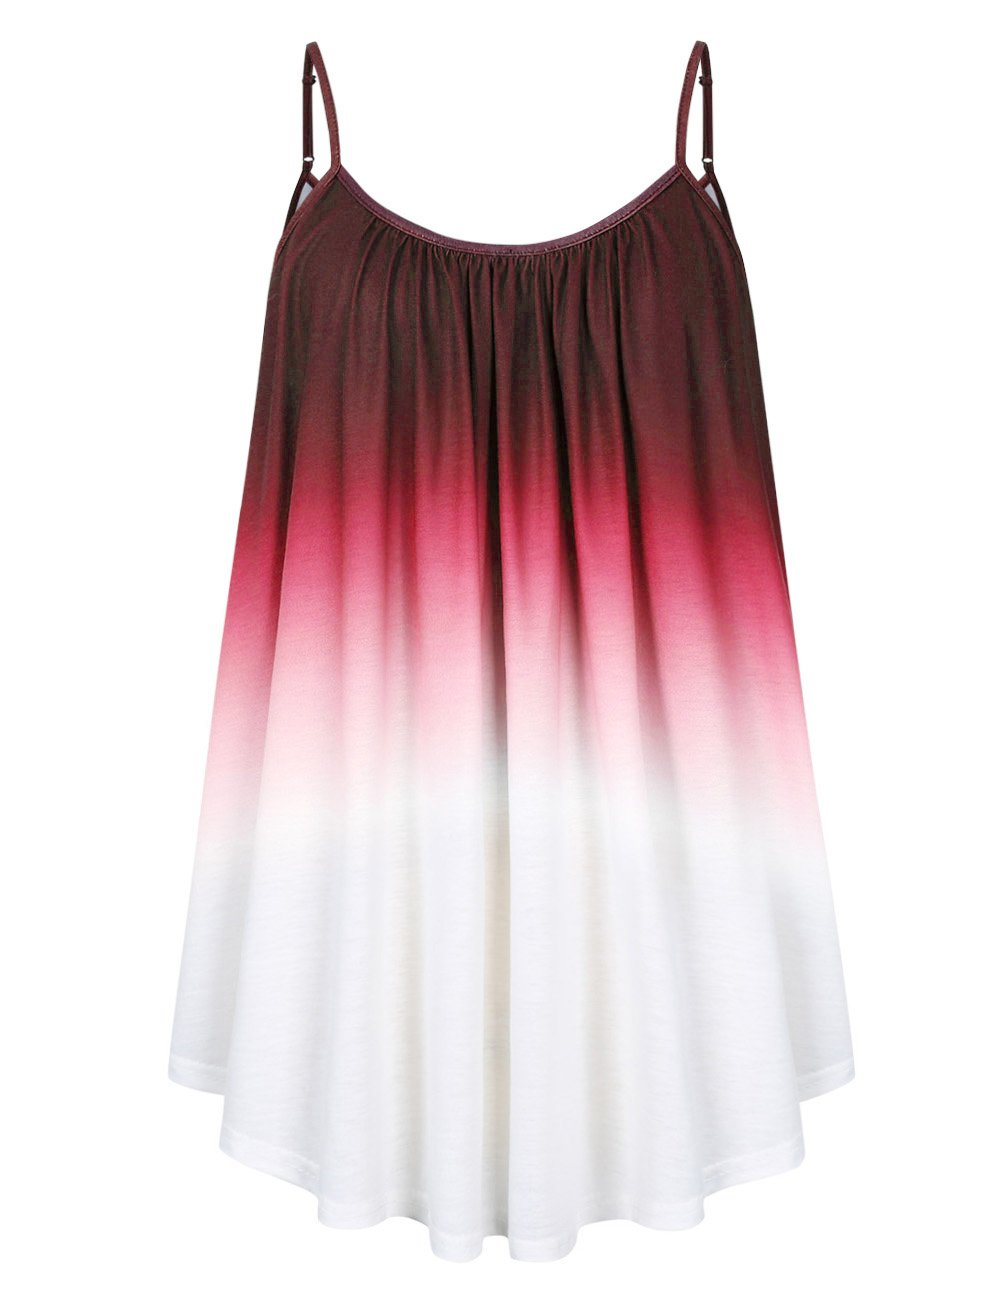 AMZ PLUS Women's Casual Gradient Spaghetti Strap Plus Size Cami Tank Top Dark Red 4XL